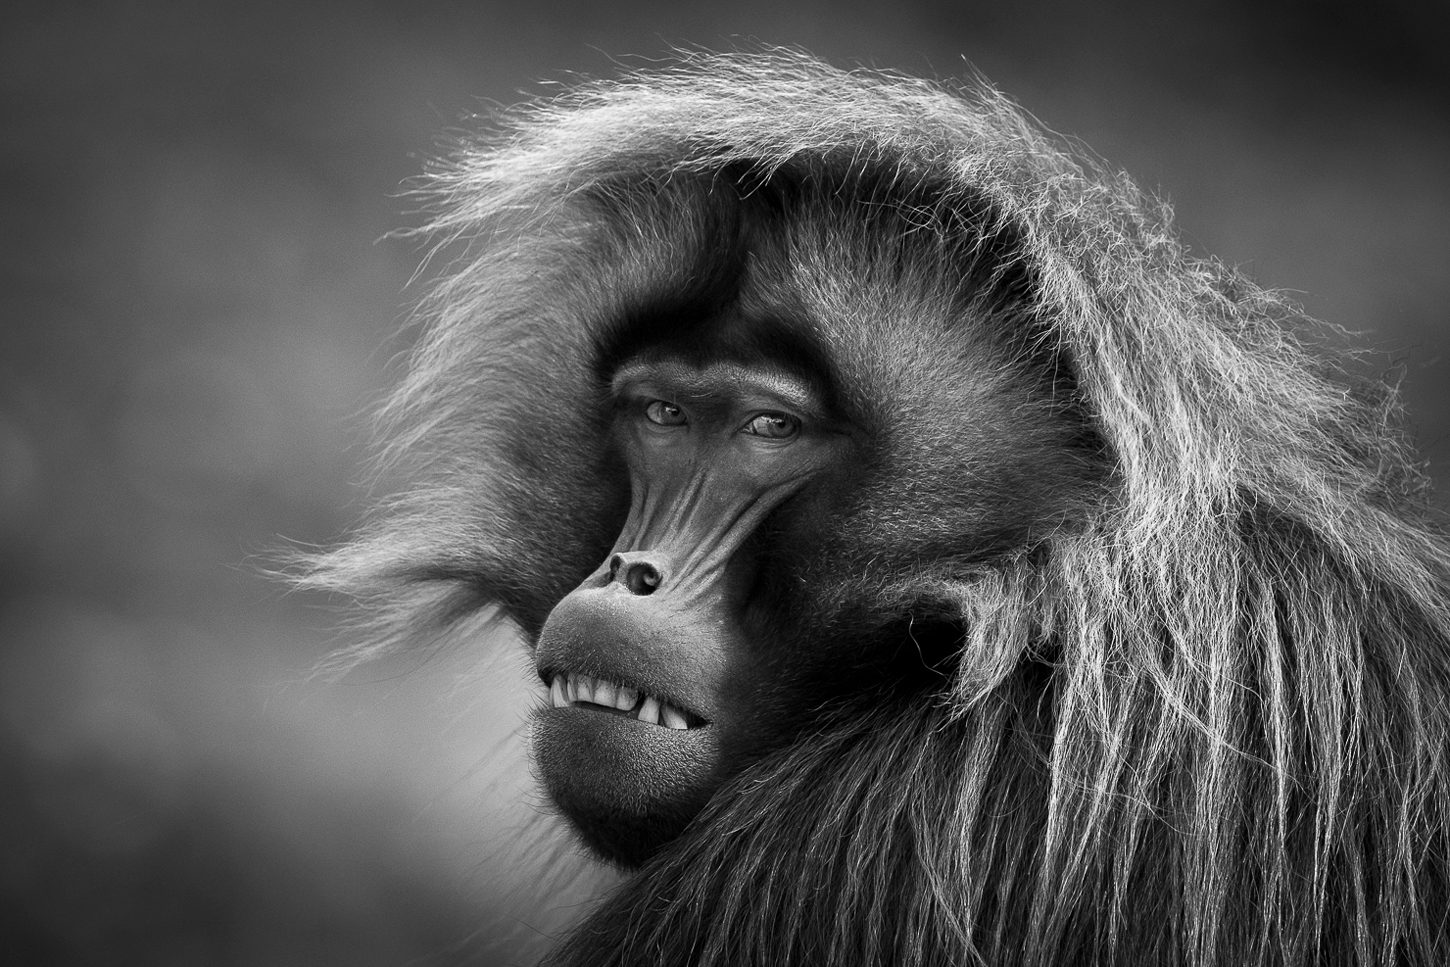 Gelada monkey portrait in the Ethiopian Highlands ©Patrice Quillard